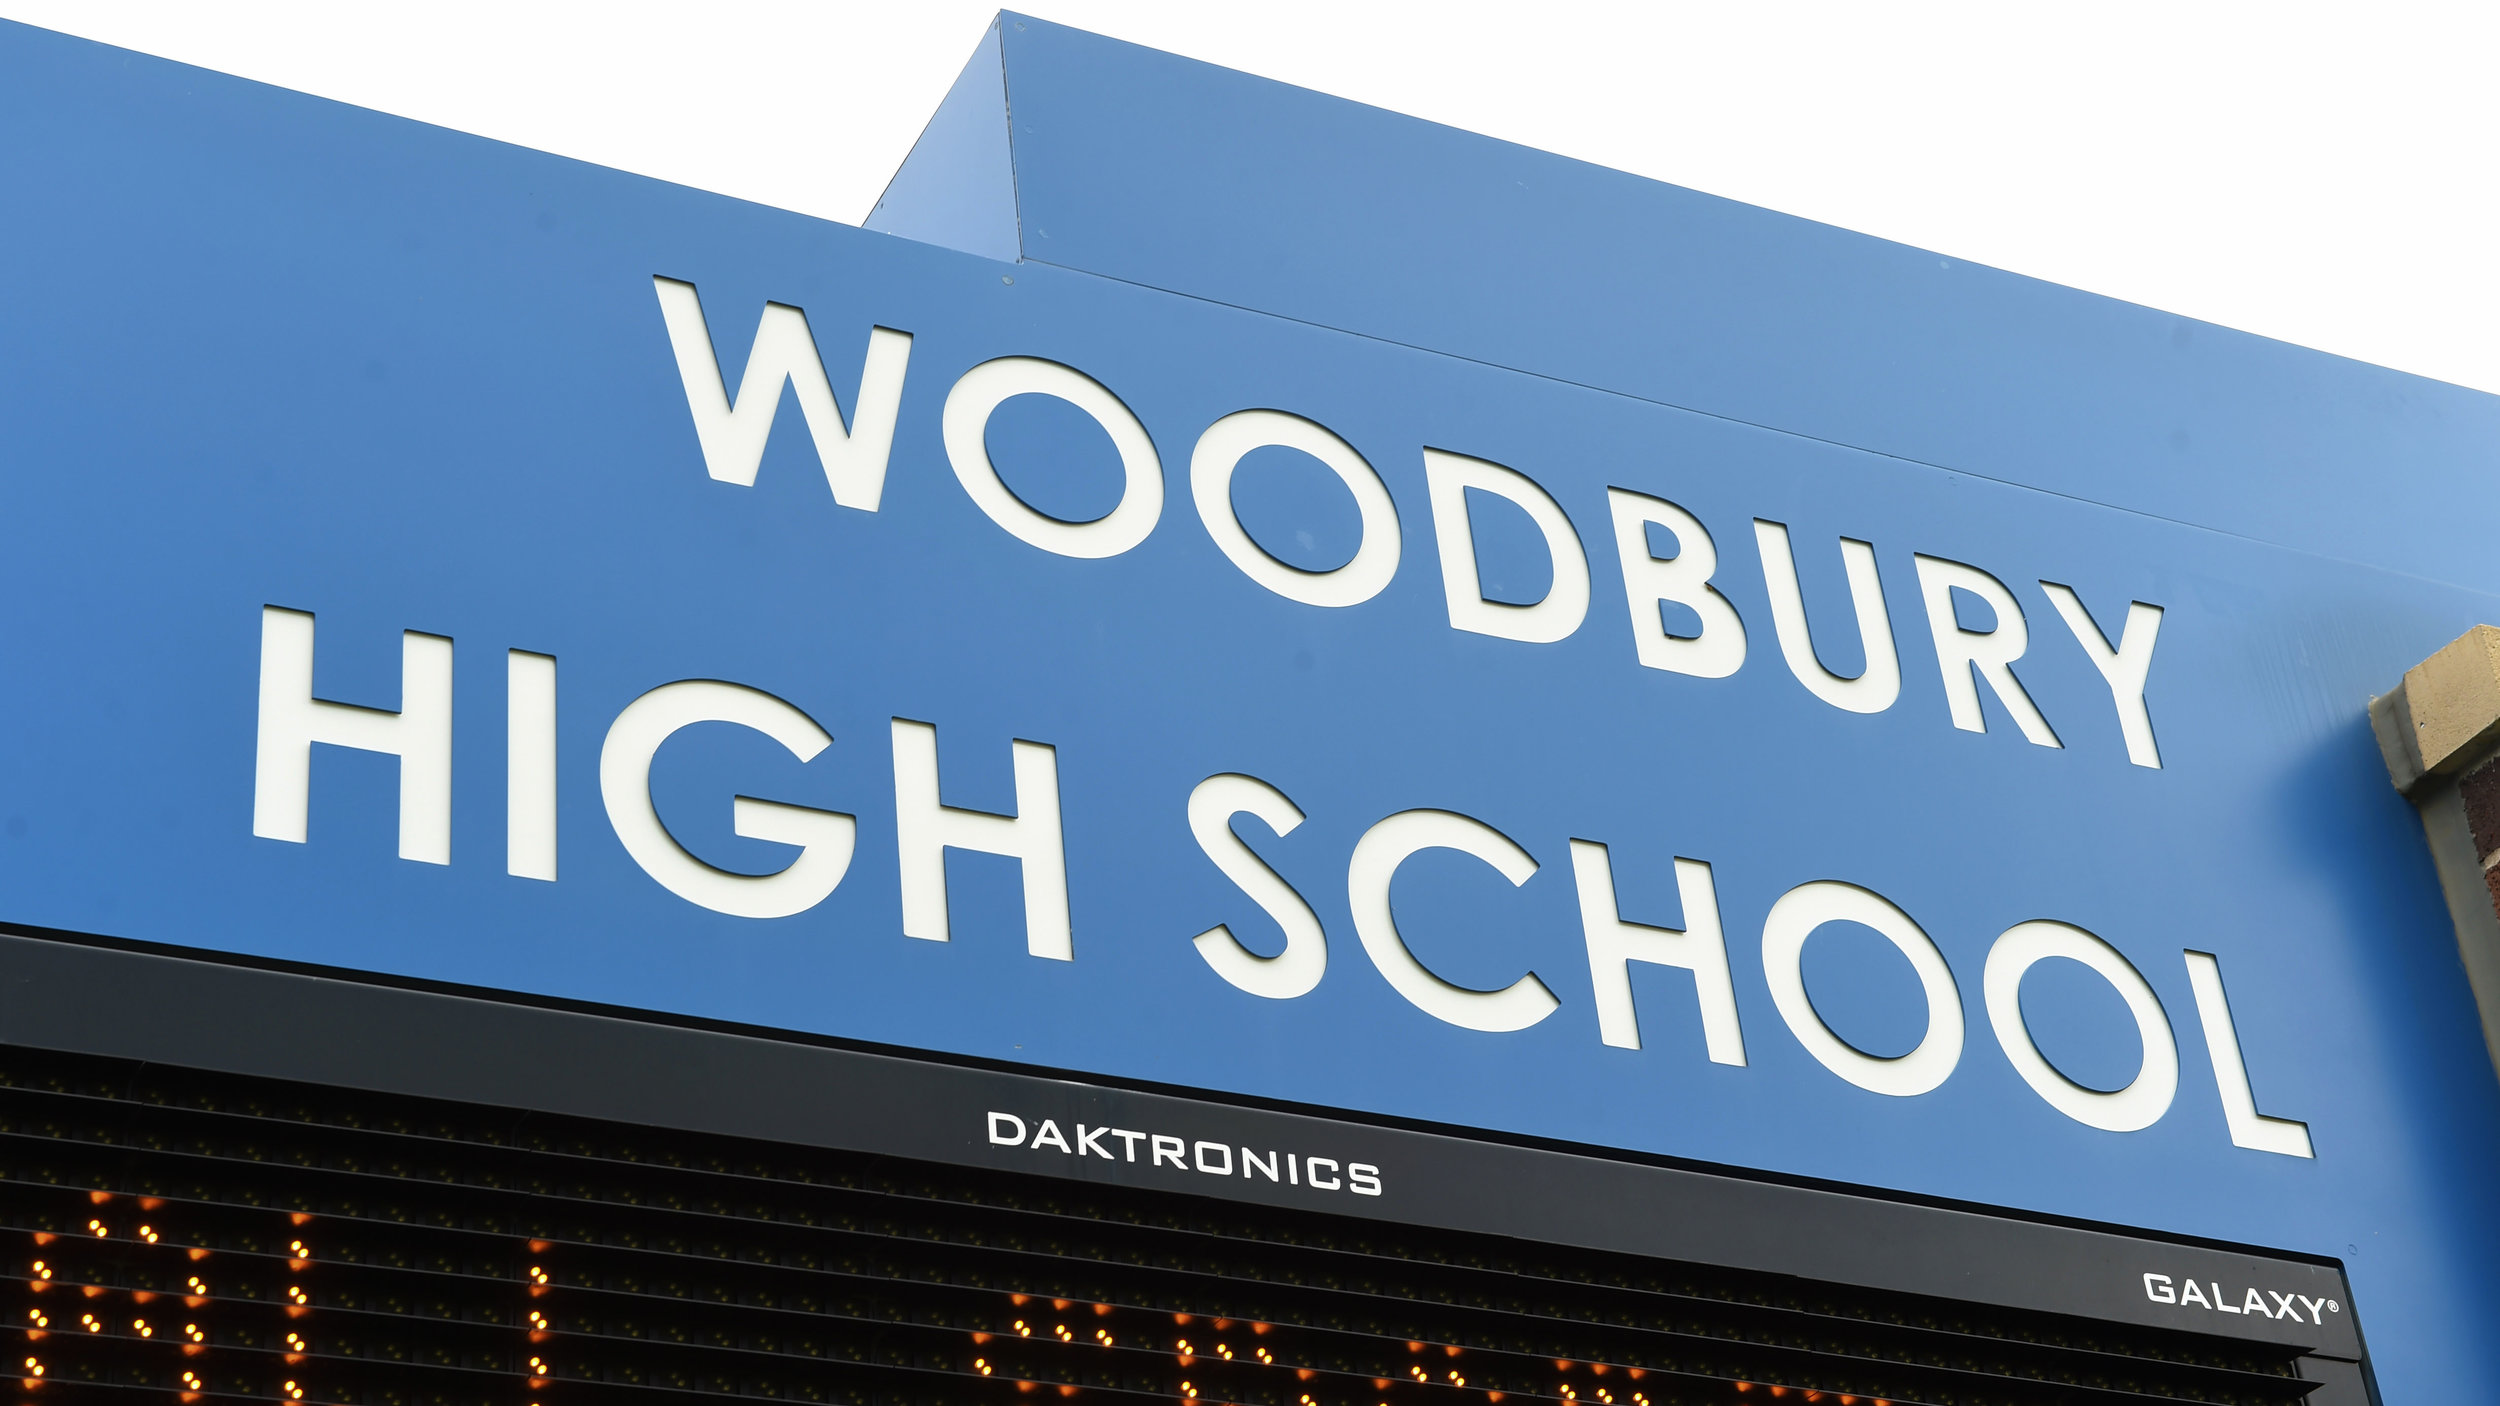 Woodbury High School